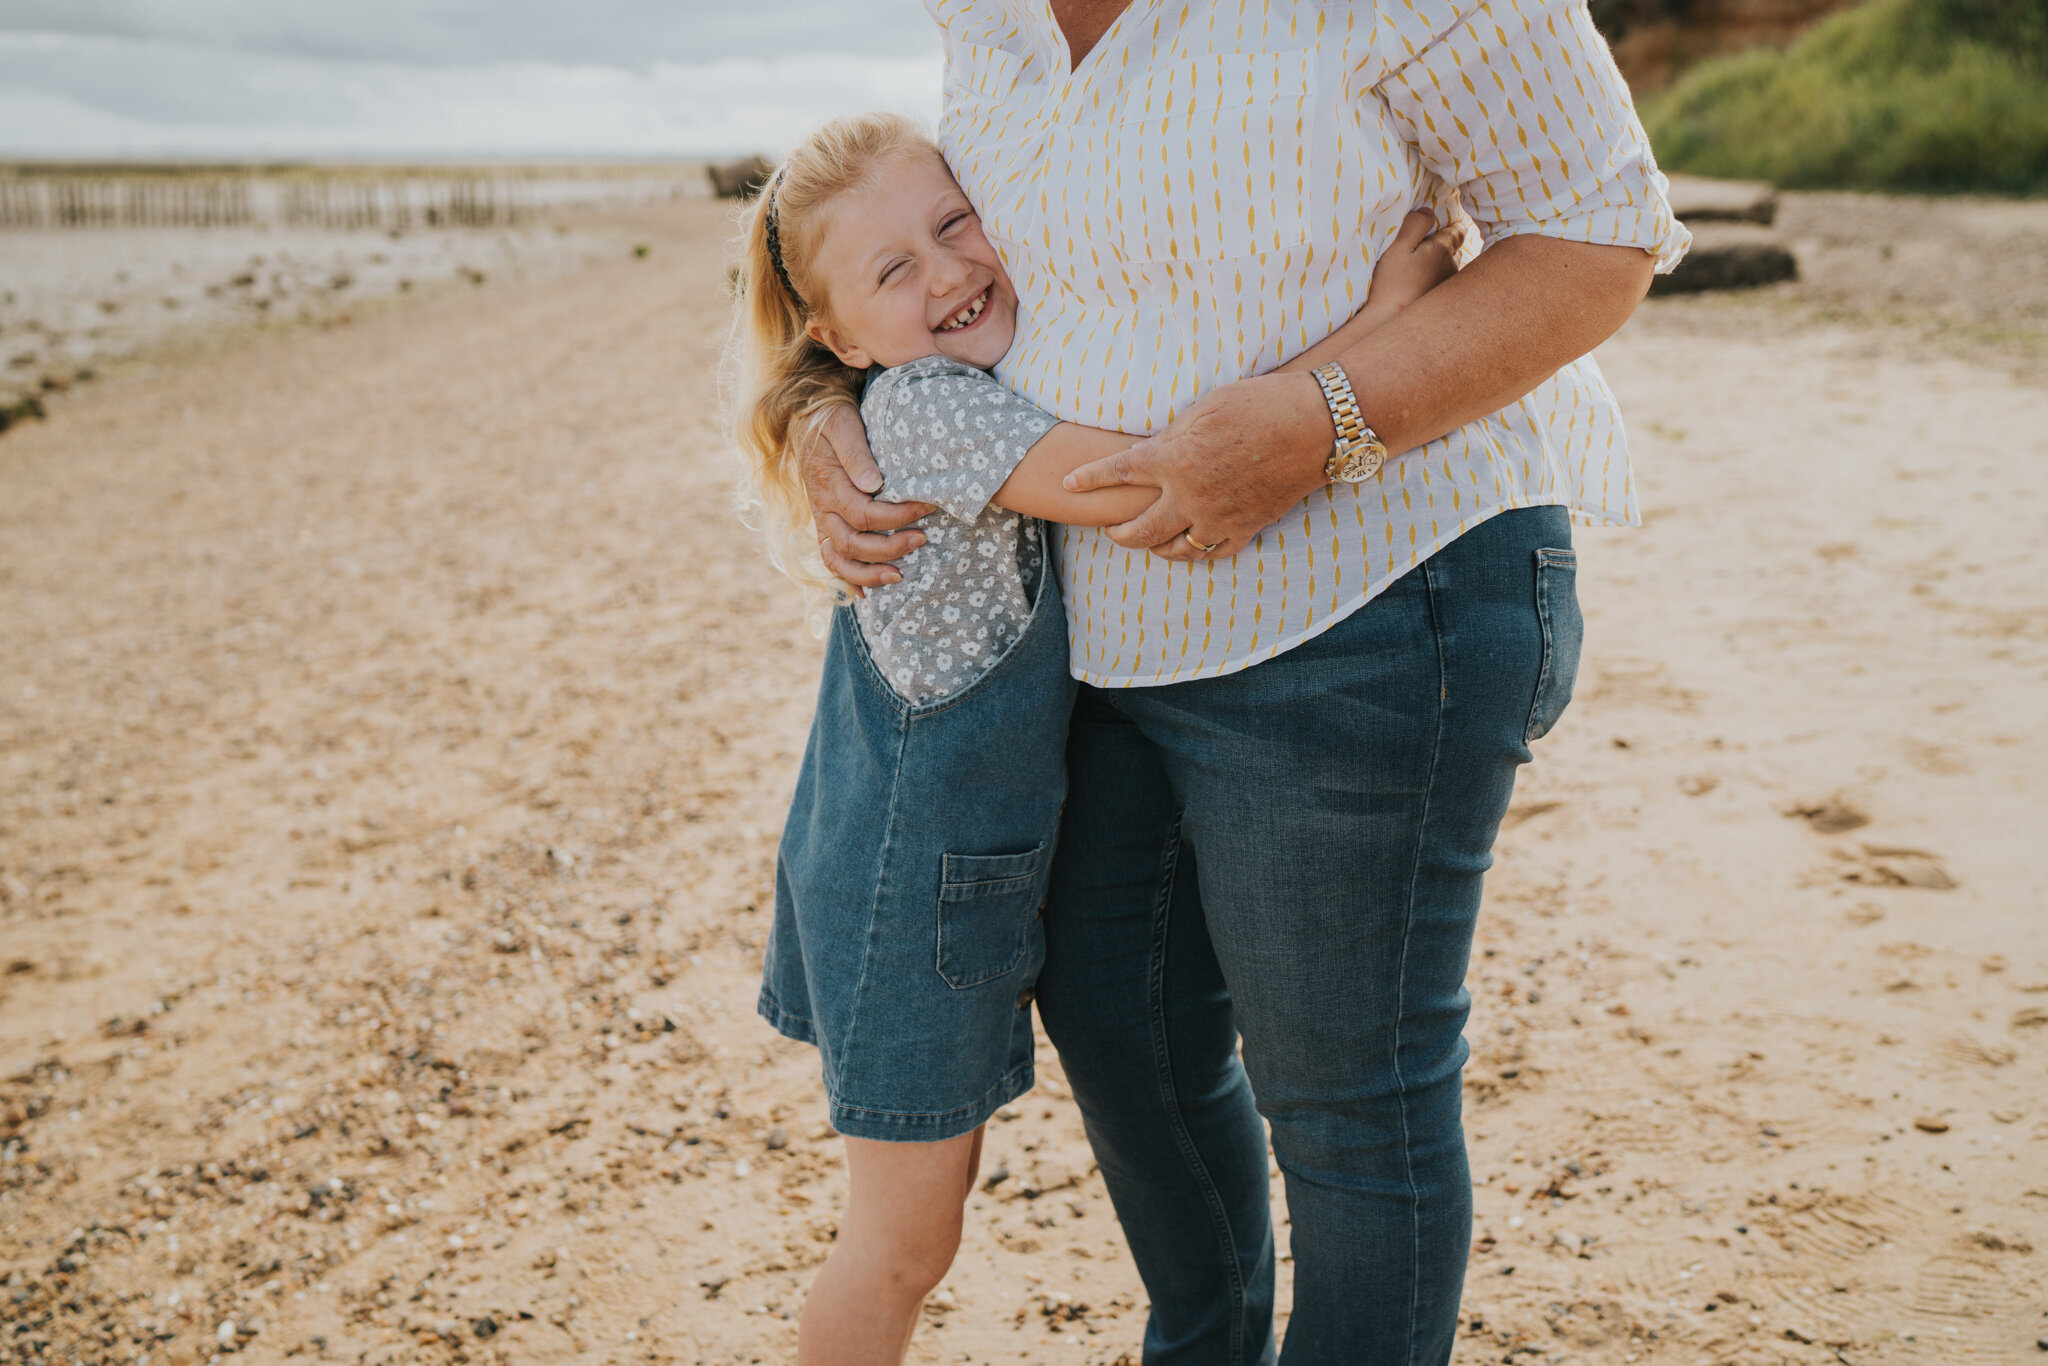 celebratory-beach-family-session-thomson-family-cudmore-grove-east-mersea-grace-elizabeth-colchester-essex-devon-suffolk-and-norfolk-alternative-wedding-and-family-photographer (19 of 53).jpg